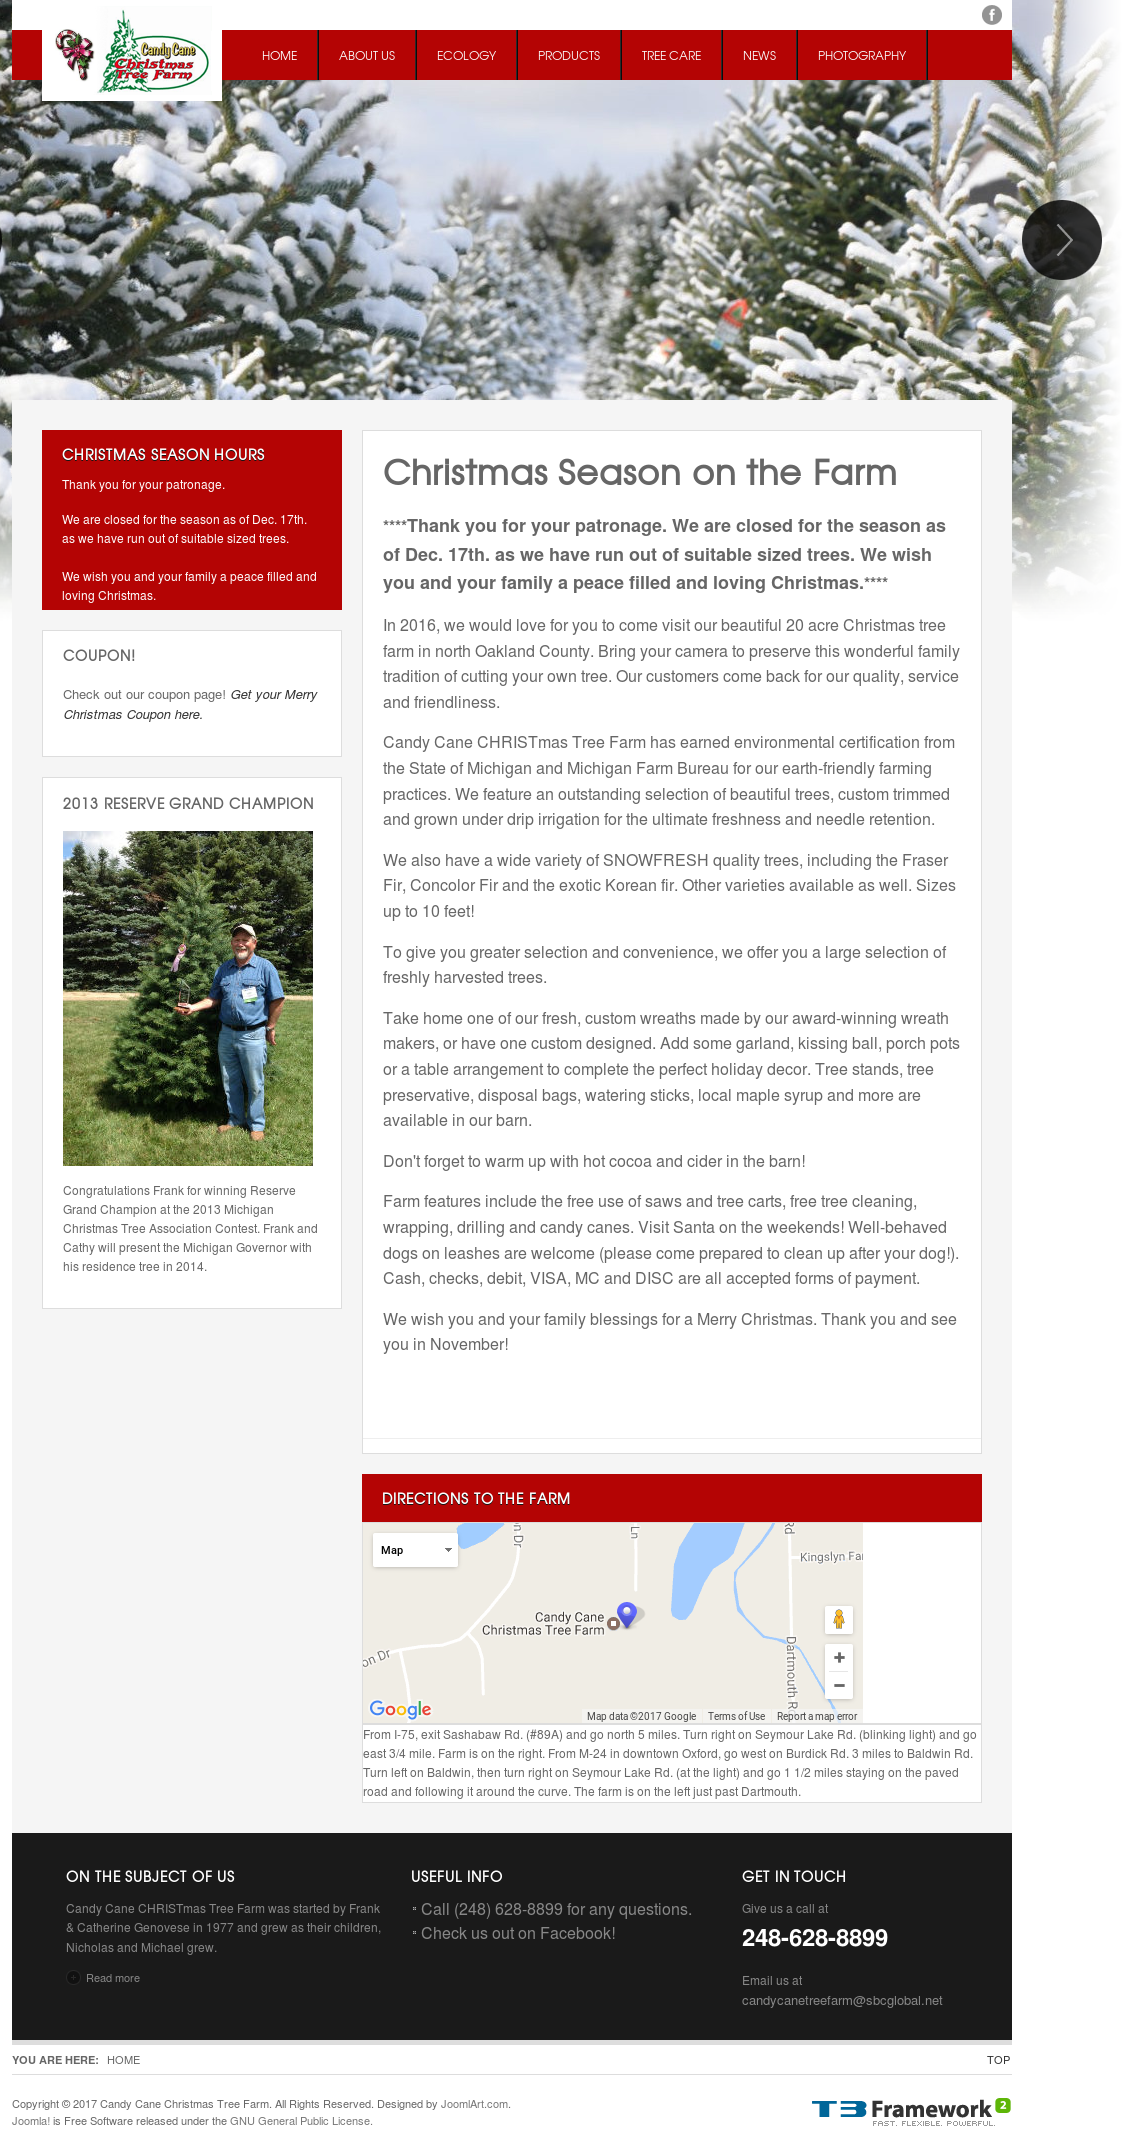 See screenshot ». + See more website history. Owler has collected 12 screenshots of Candy Cane Christmas Tree Farm's ...